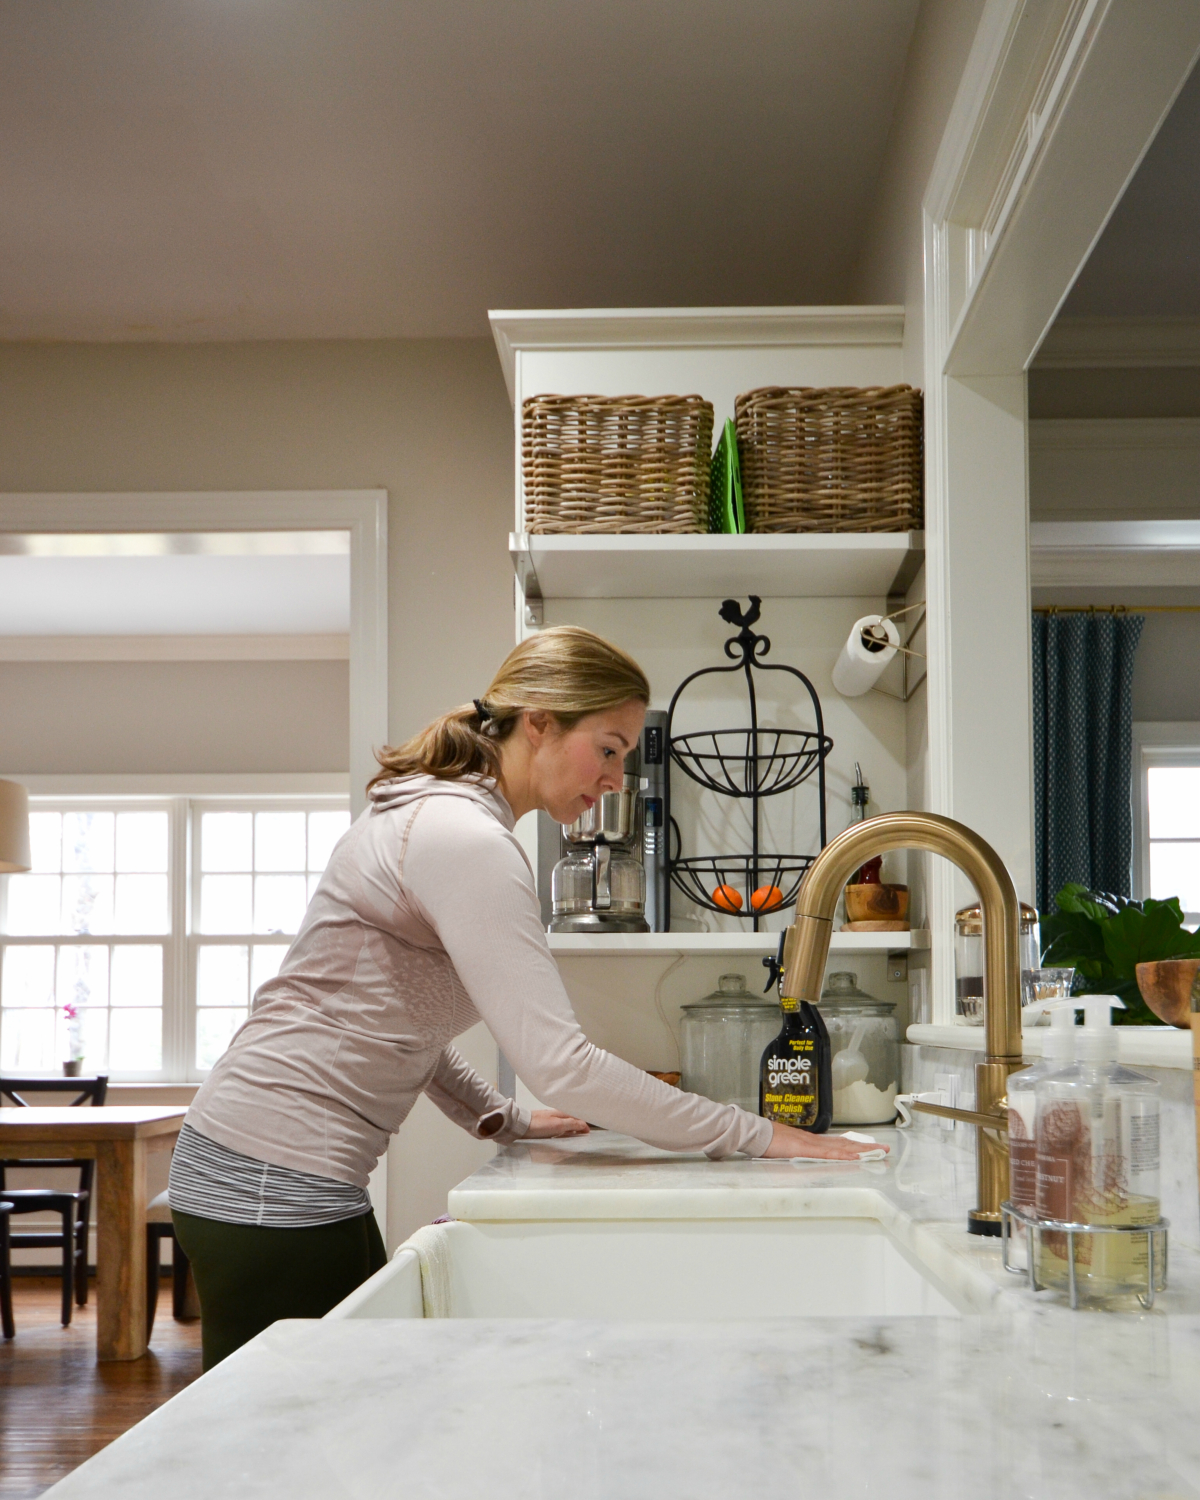 Kitchen Cleaning: Kitchen Spring Cleaning Essentials